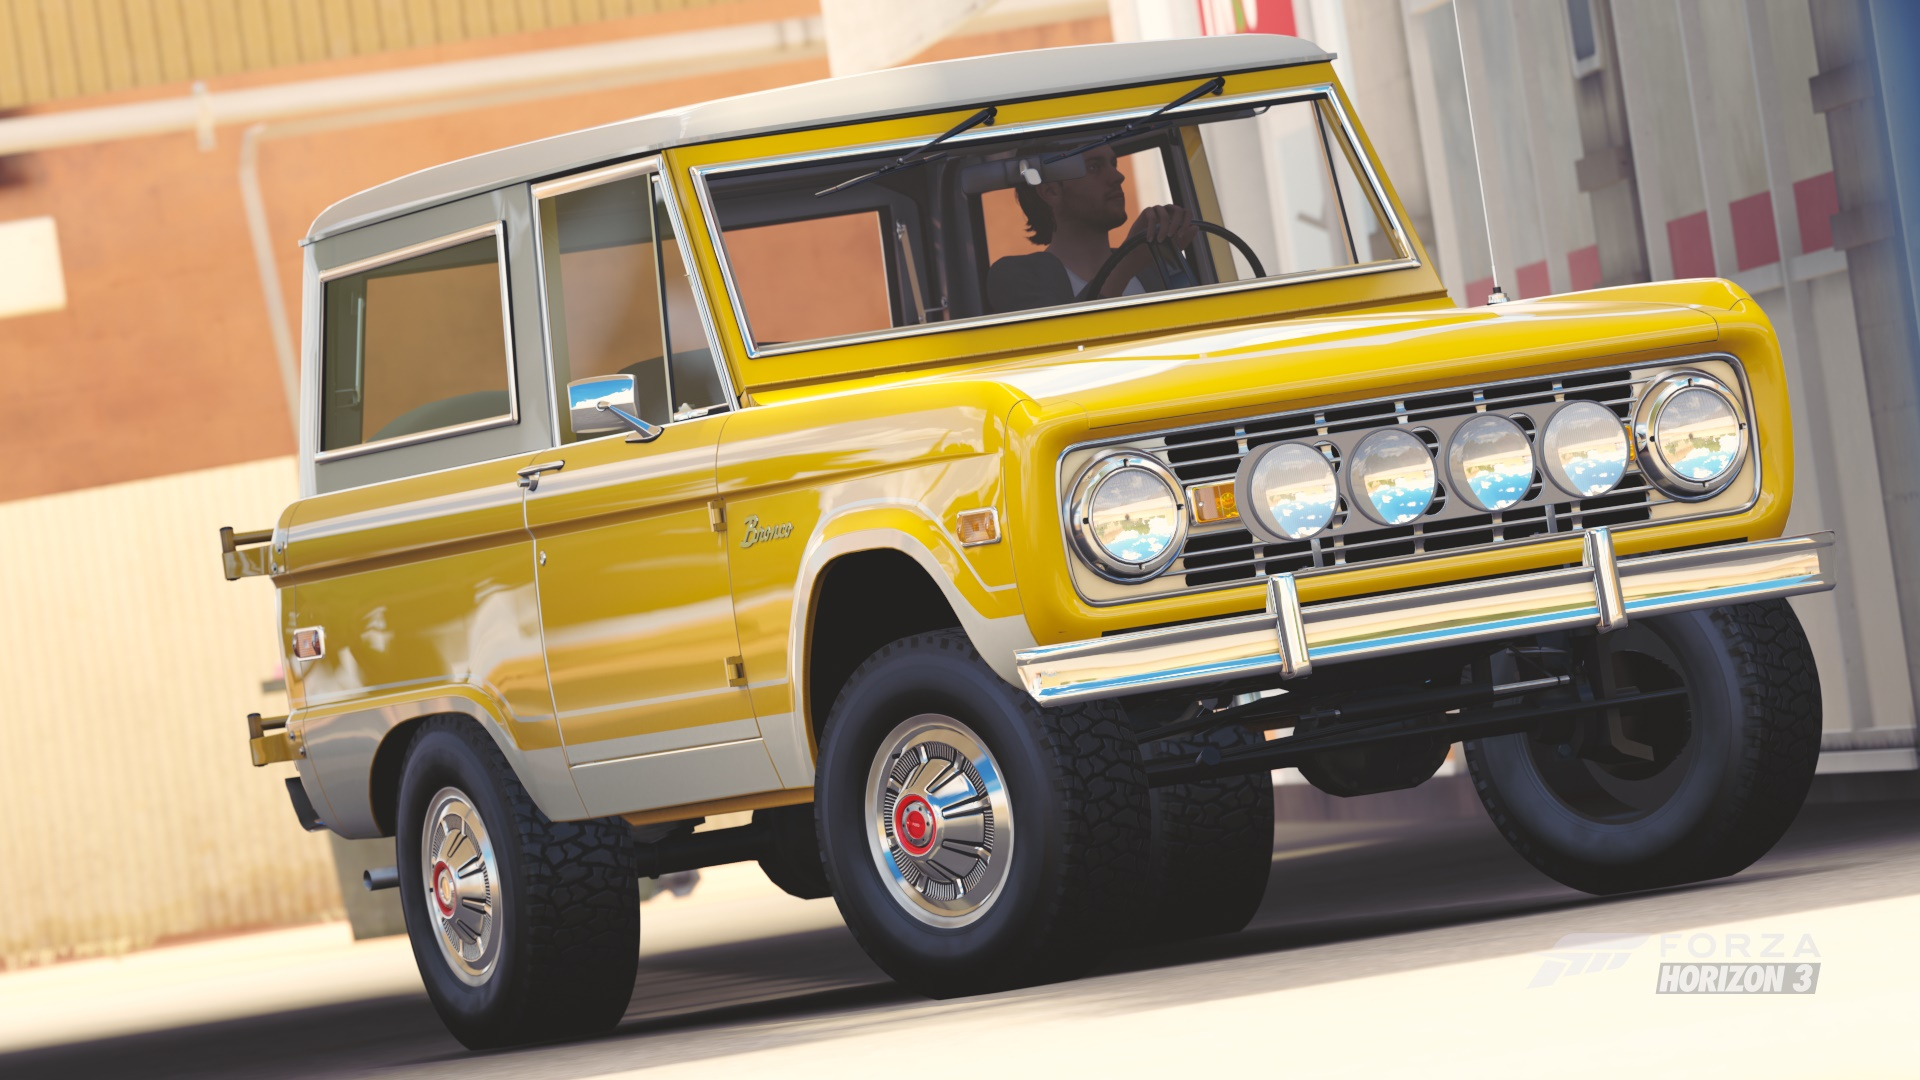 Forza Horizon 3 Cars 1969 Ford Bronco Ranger Xlt 1975 Photo By I R Will77